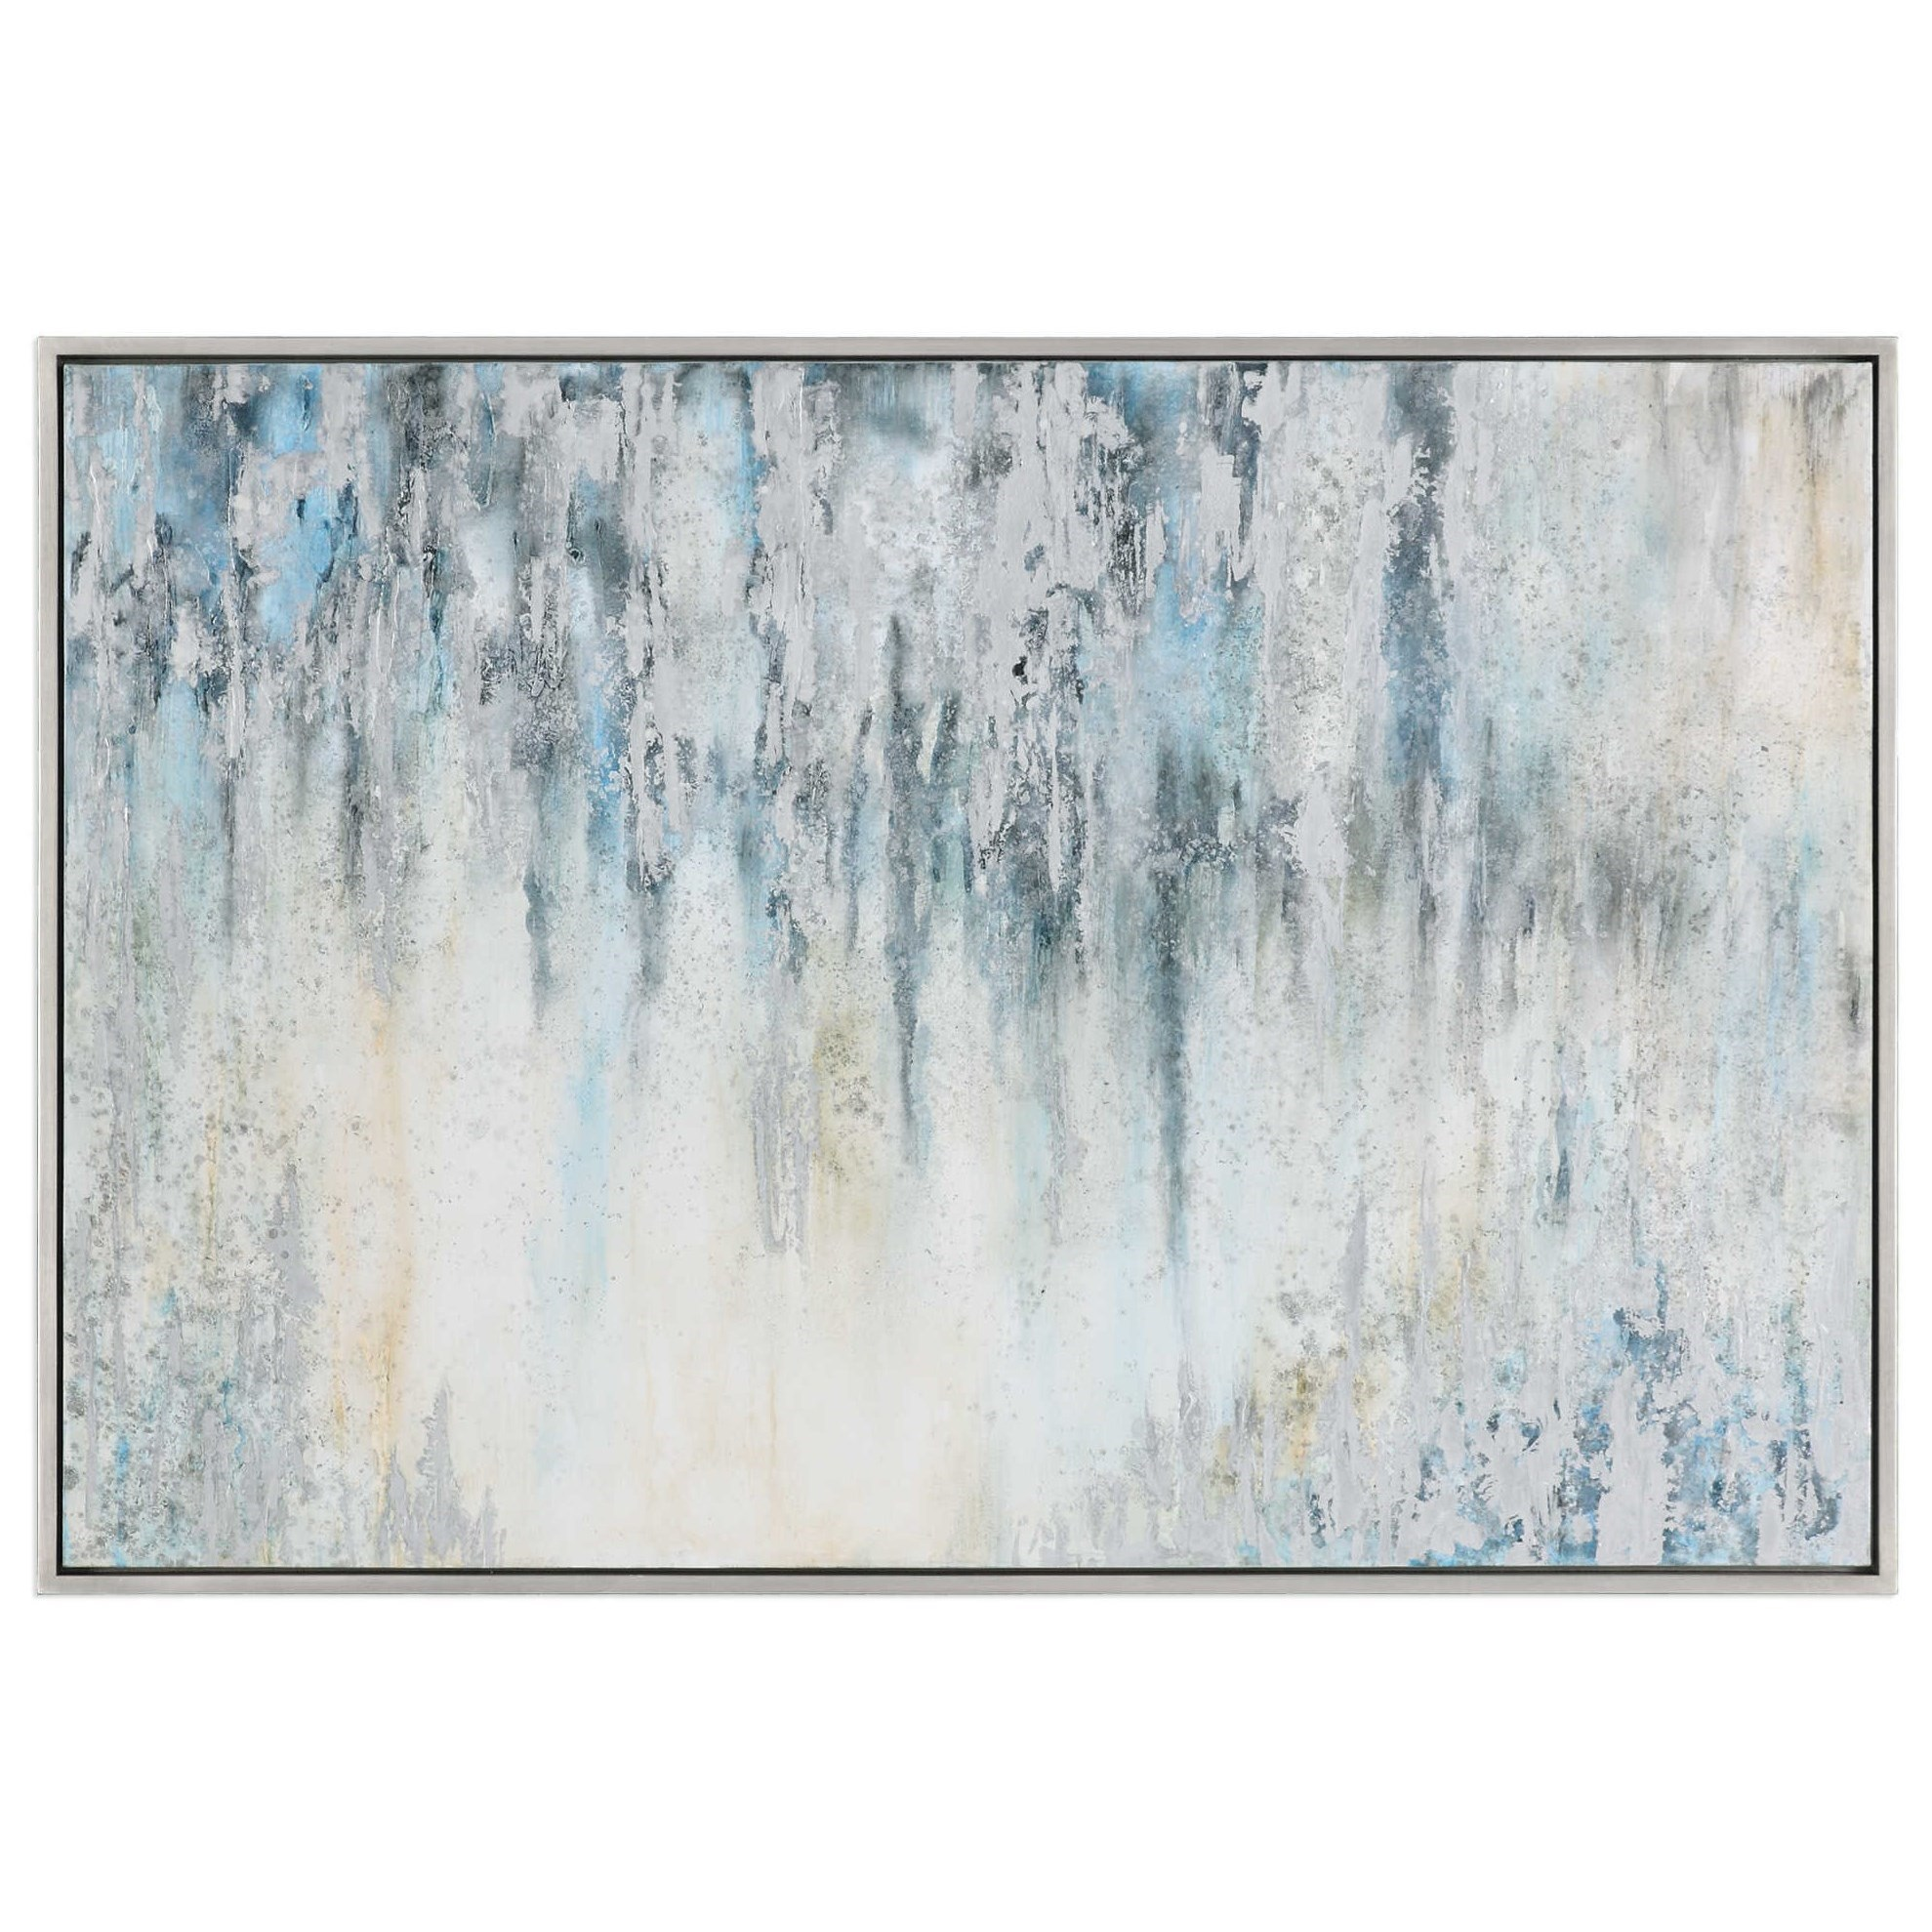 Art Overcast Abstract Art by Uttermost at Michael Alan Furniture & Design